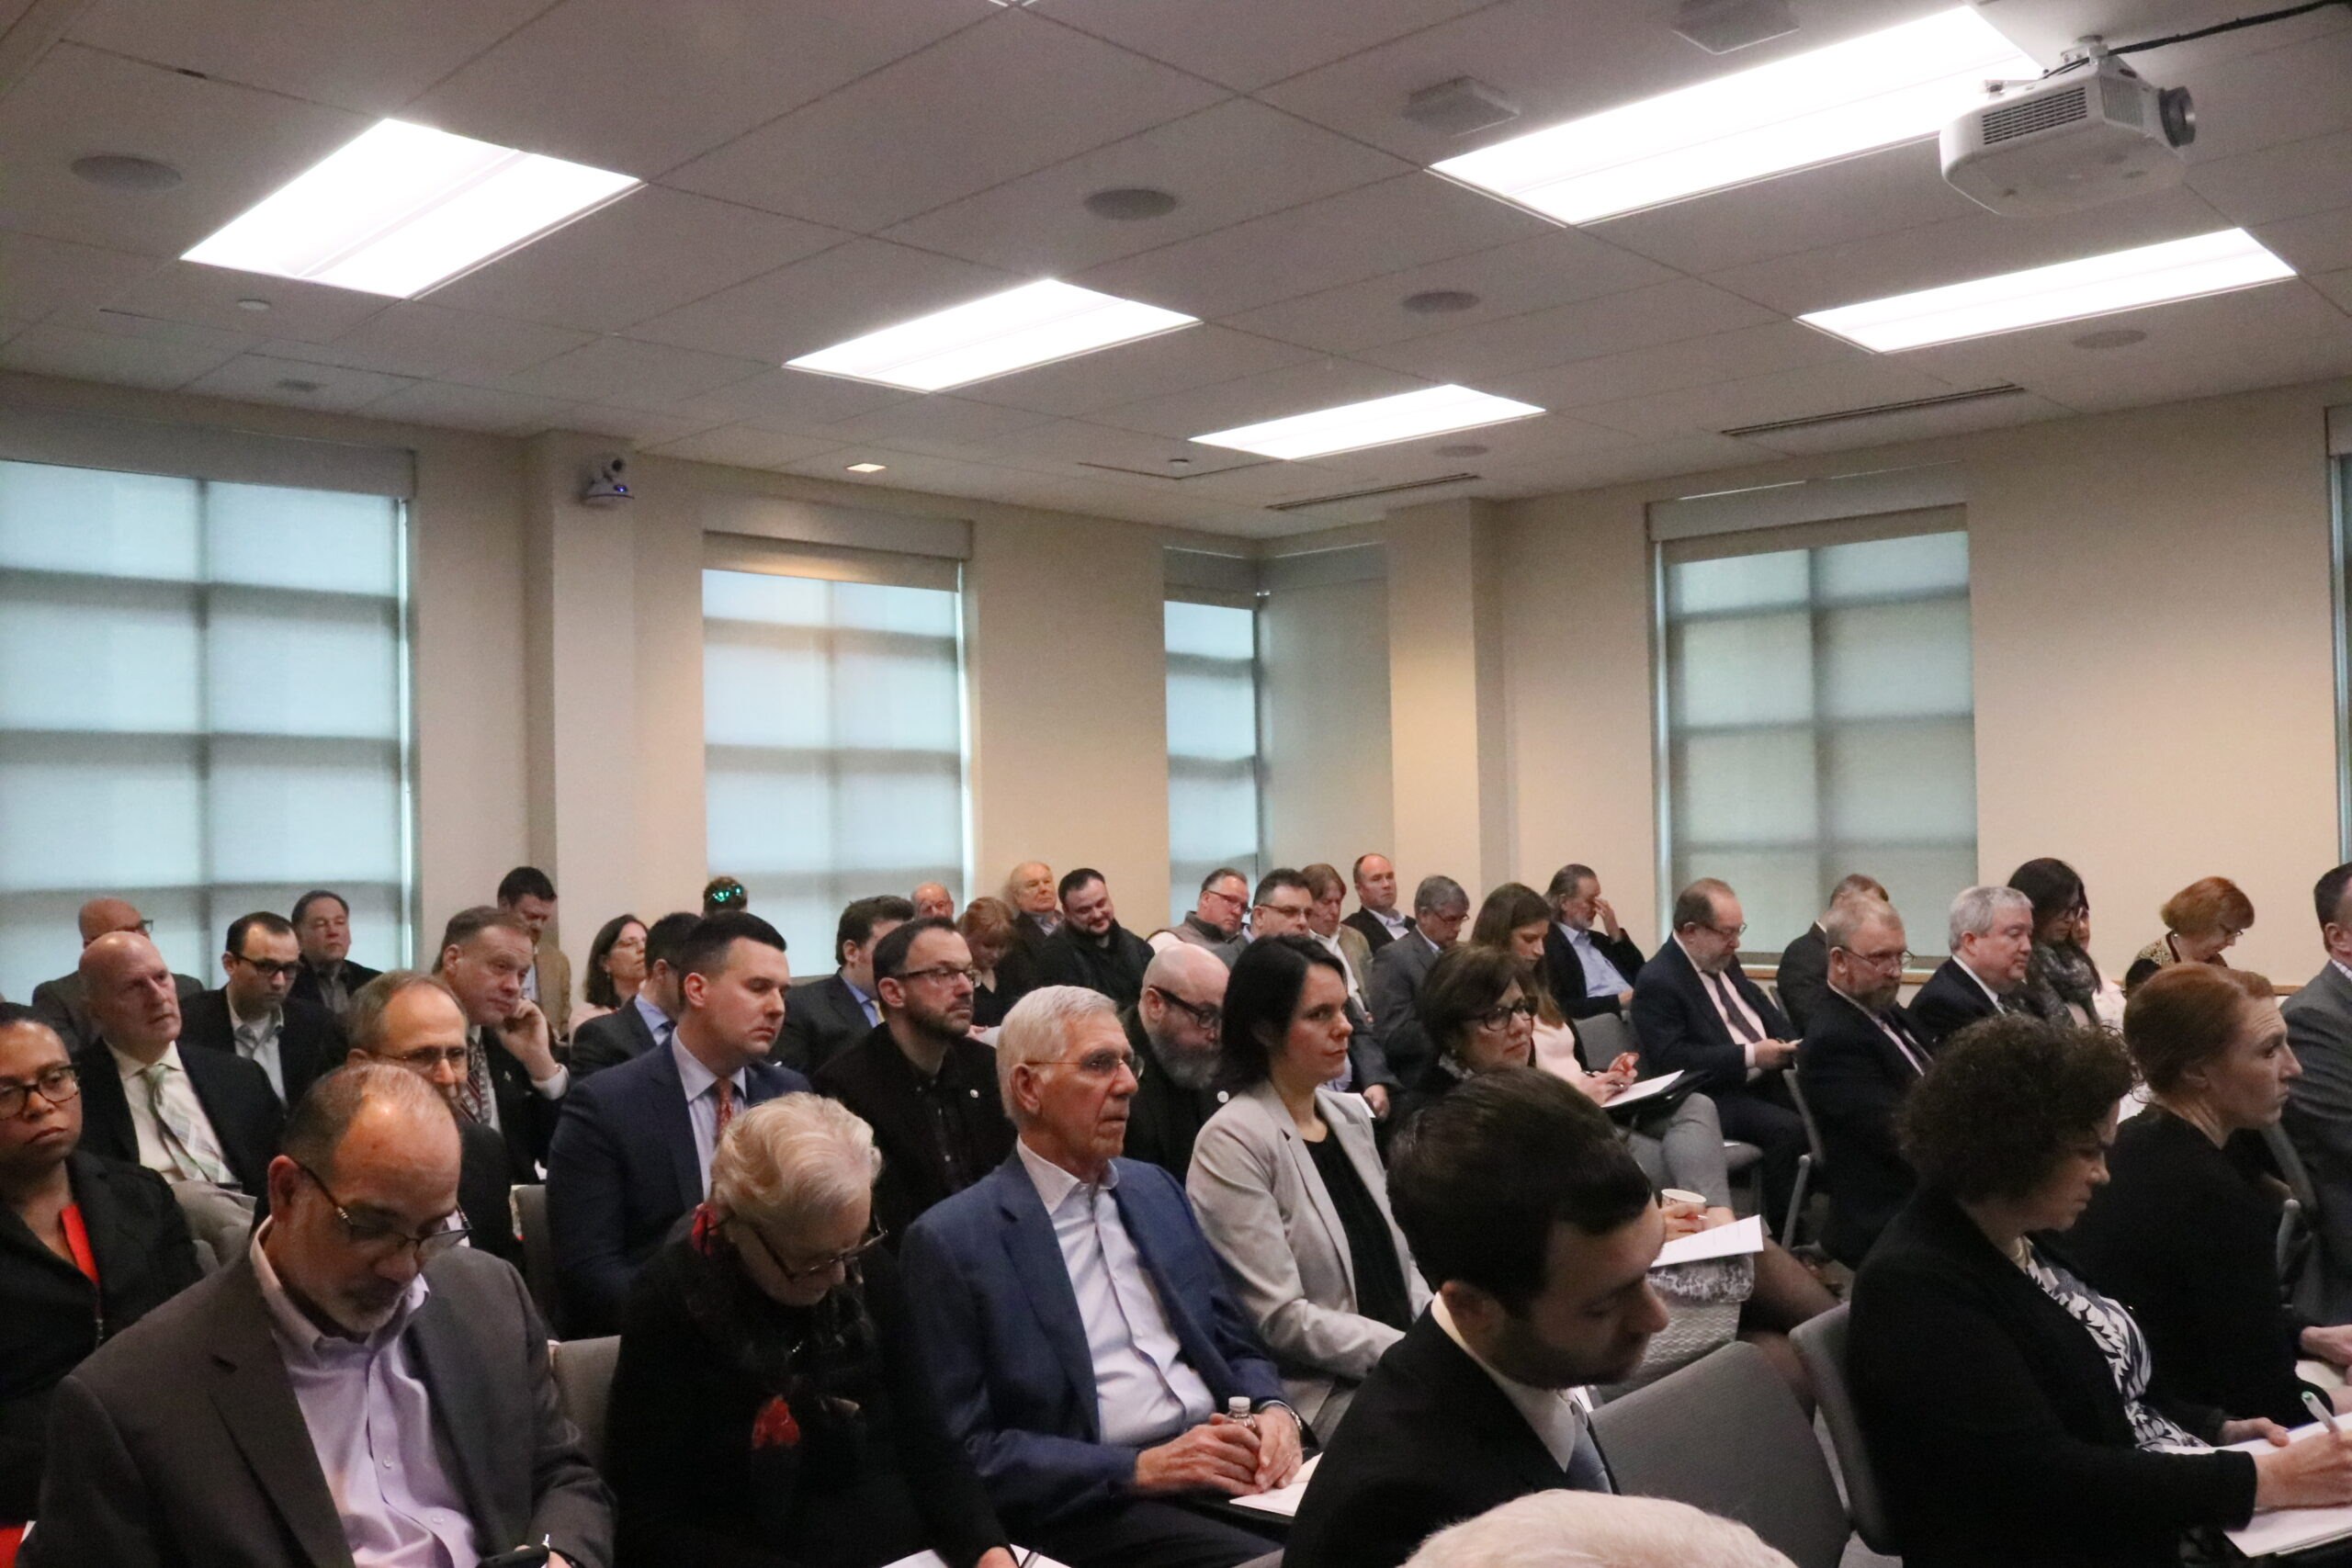 crowd shot of full conference room at NJBIA headquaters